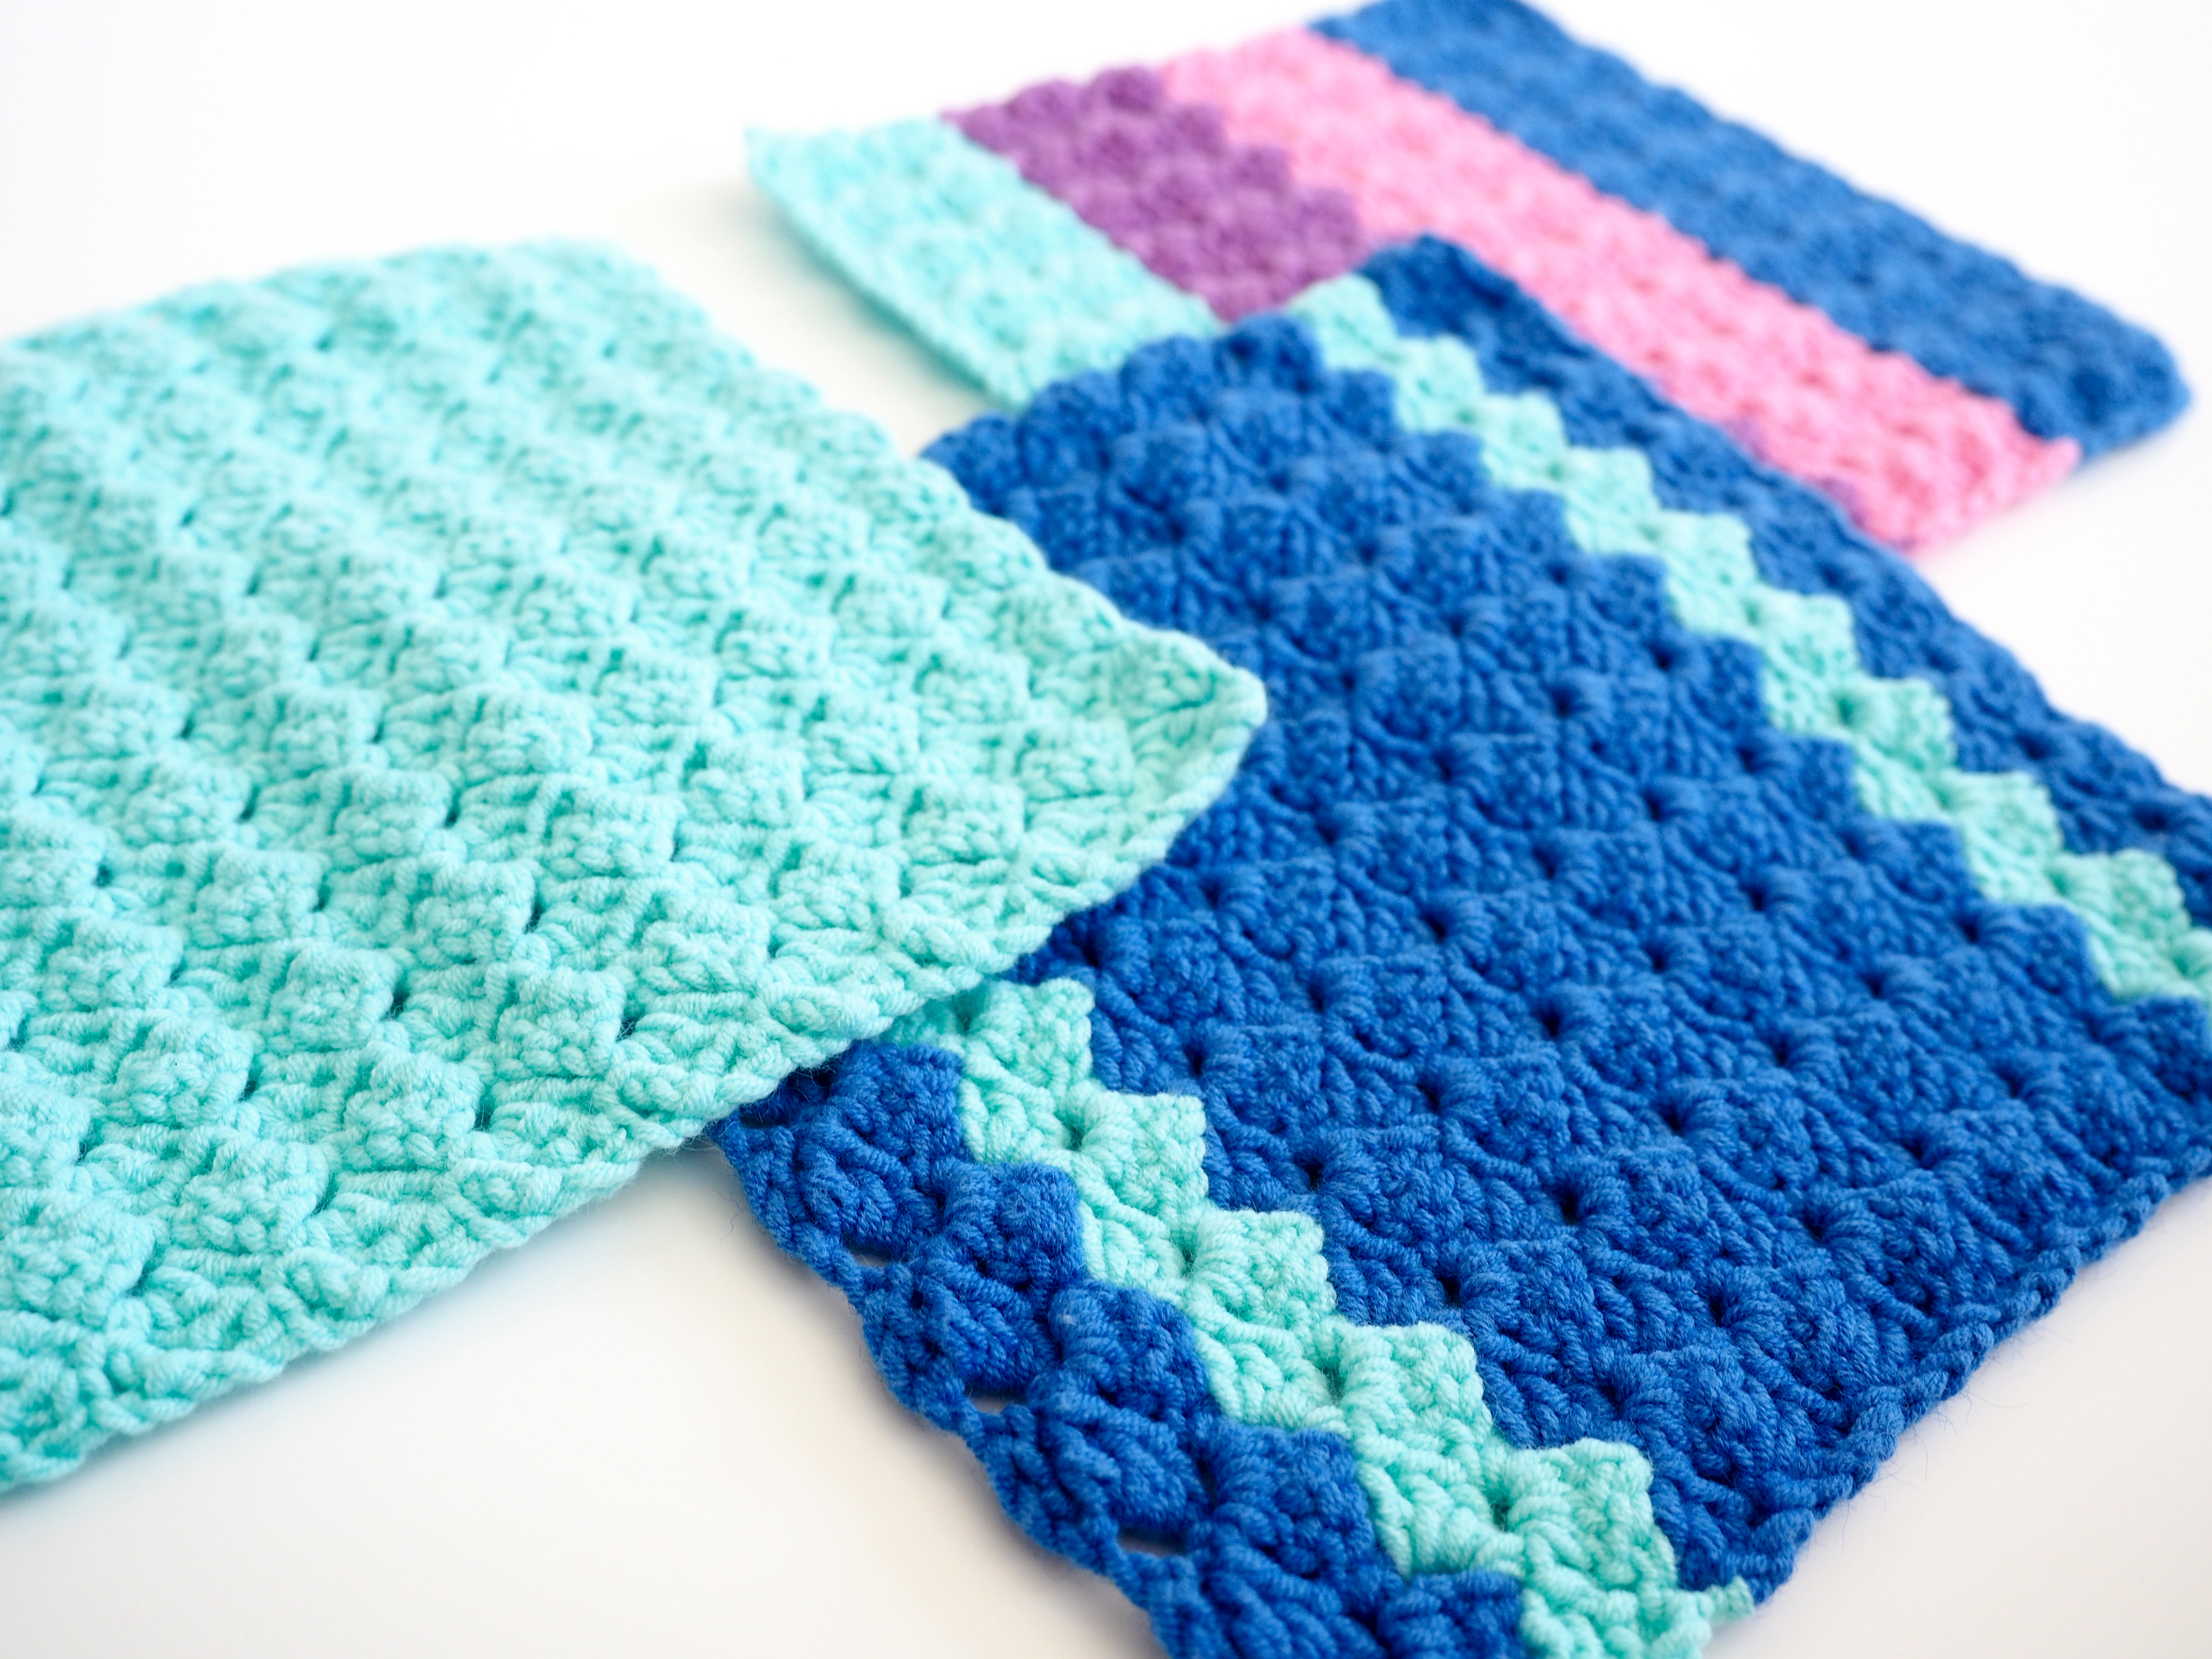 18 Quick Kitchen and Dining Crochet Patterns - Dabbles & Babbles